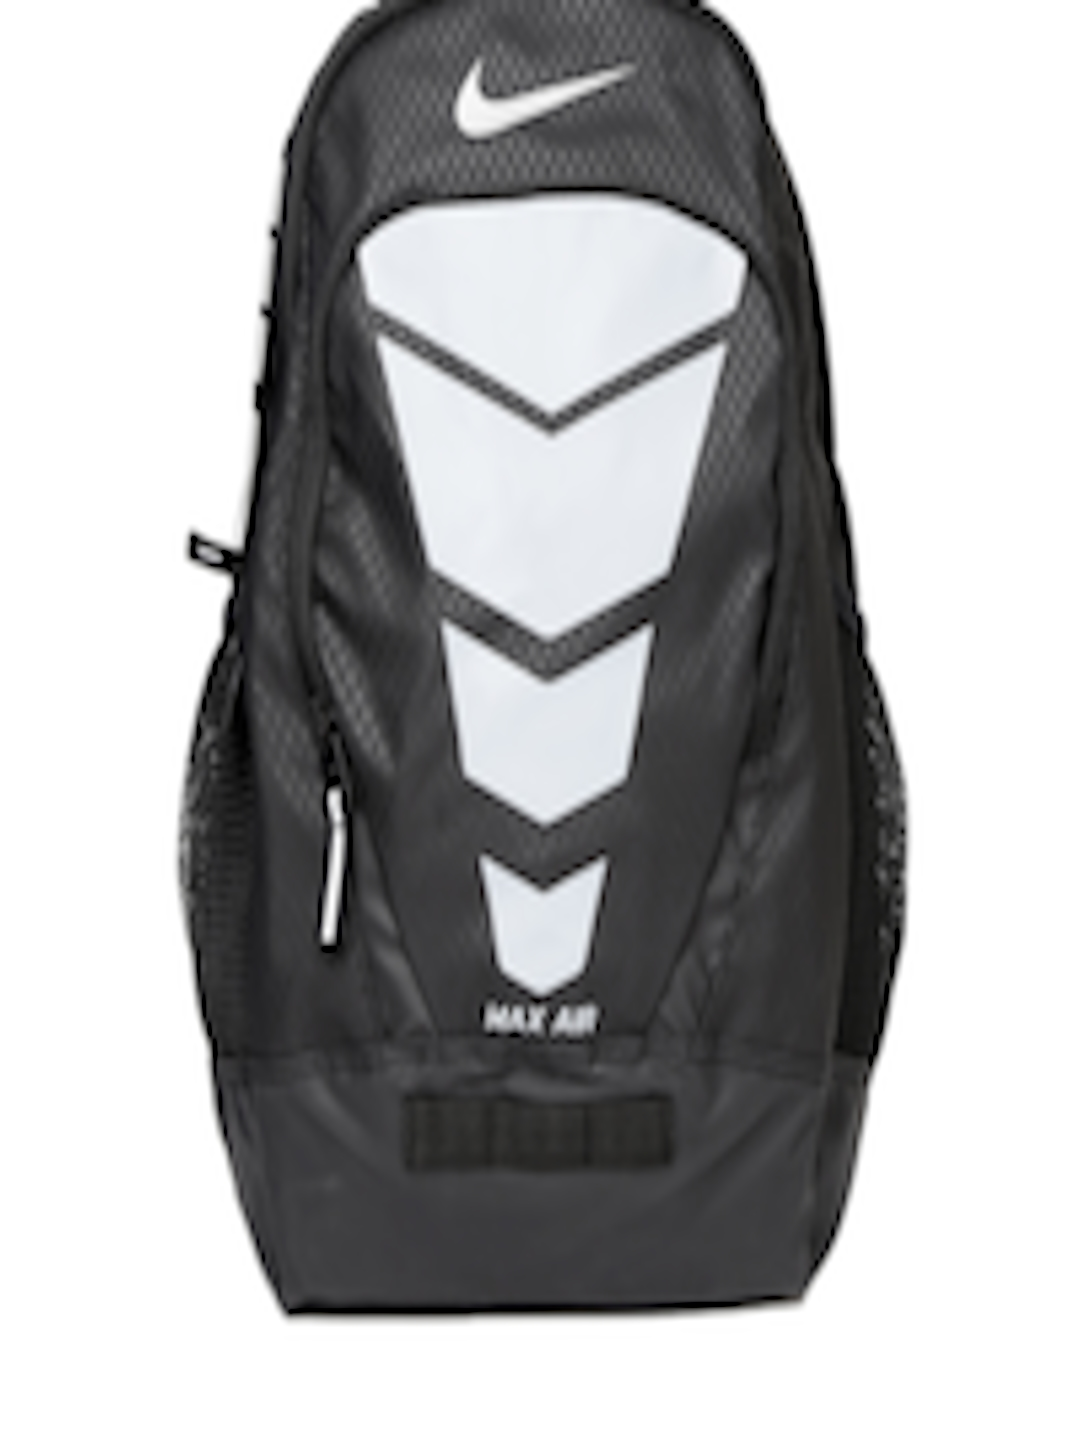 376c2532b8 Buy Nike Unisex Black   Grey Max Air Vapor Backpack - Backpacks for Unisex  1110481